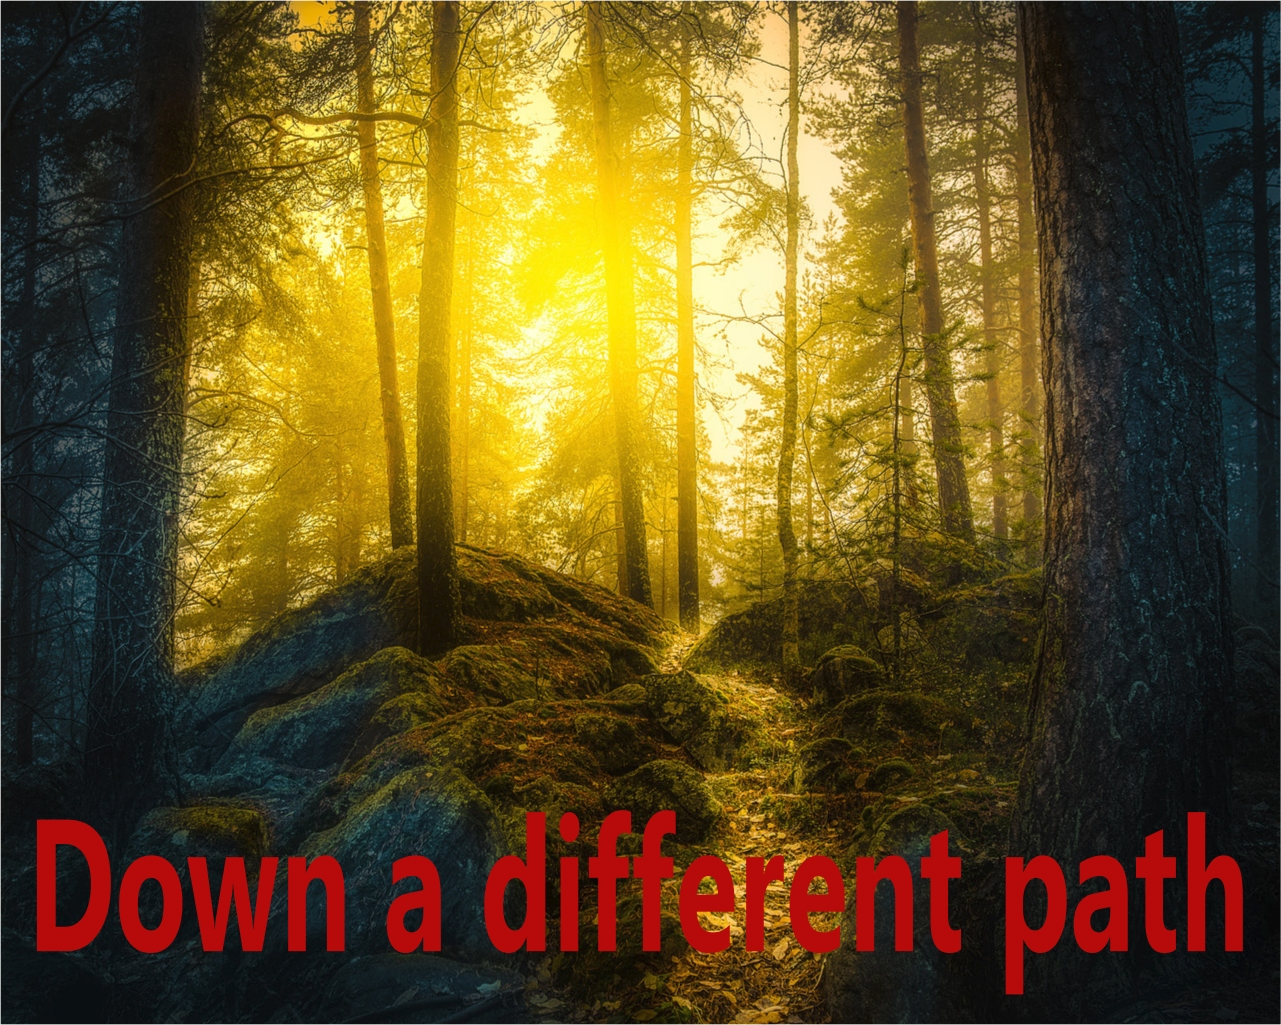 Down a different path